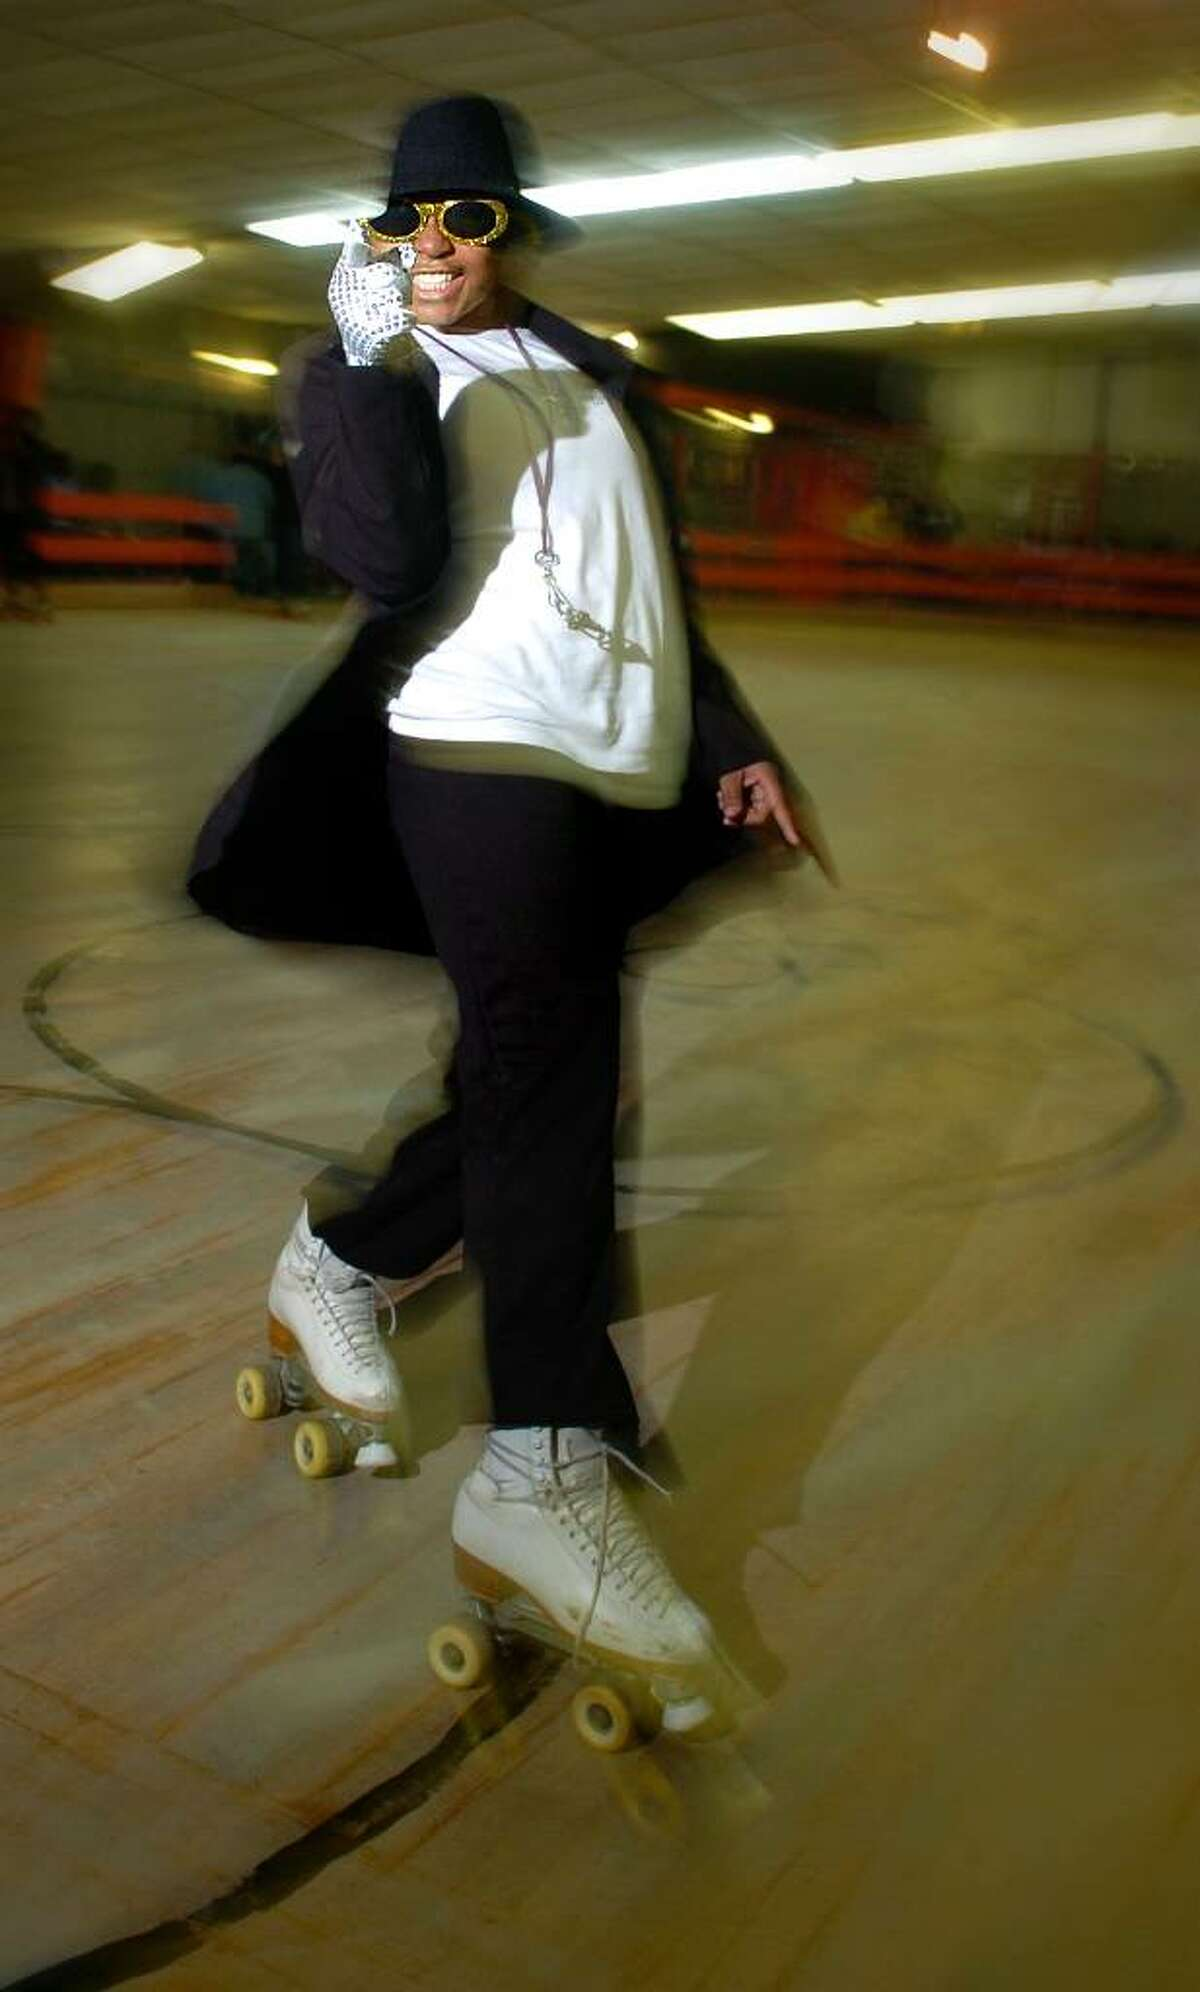 Twelve-year-old Tiajah Smith, of Bridgeport, skates by doing her best Michael Jackson impersonation for